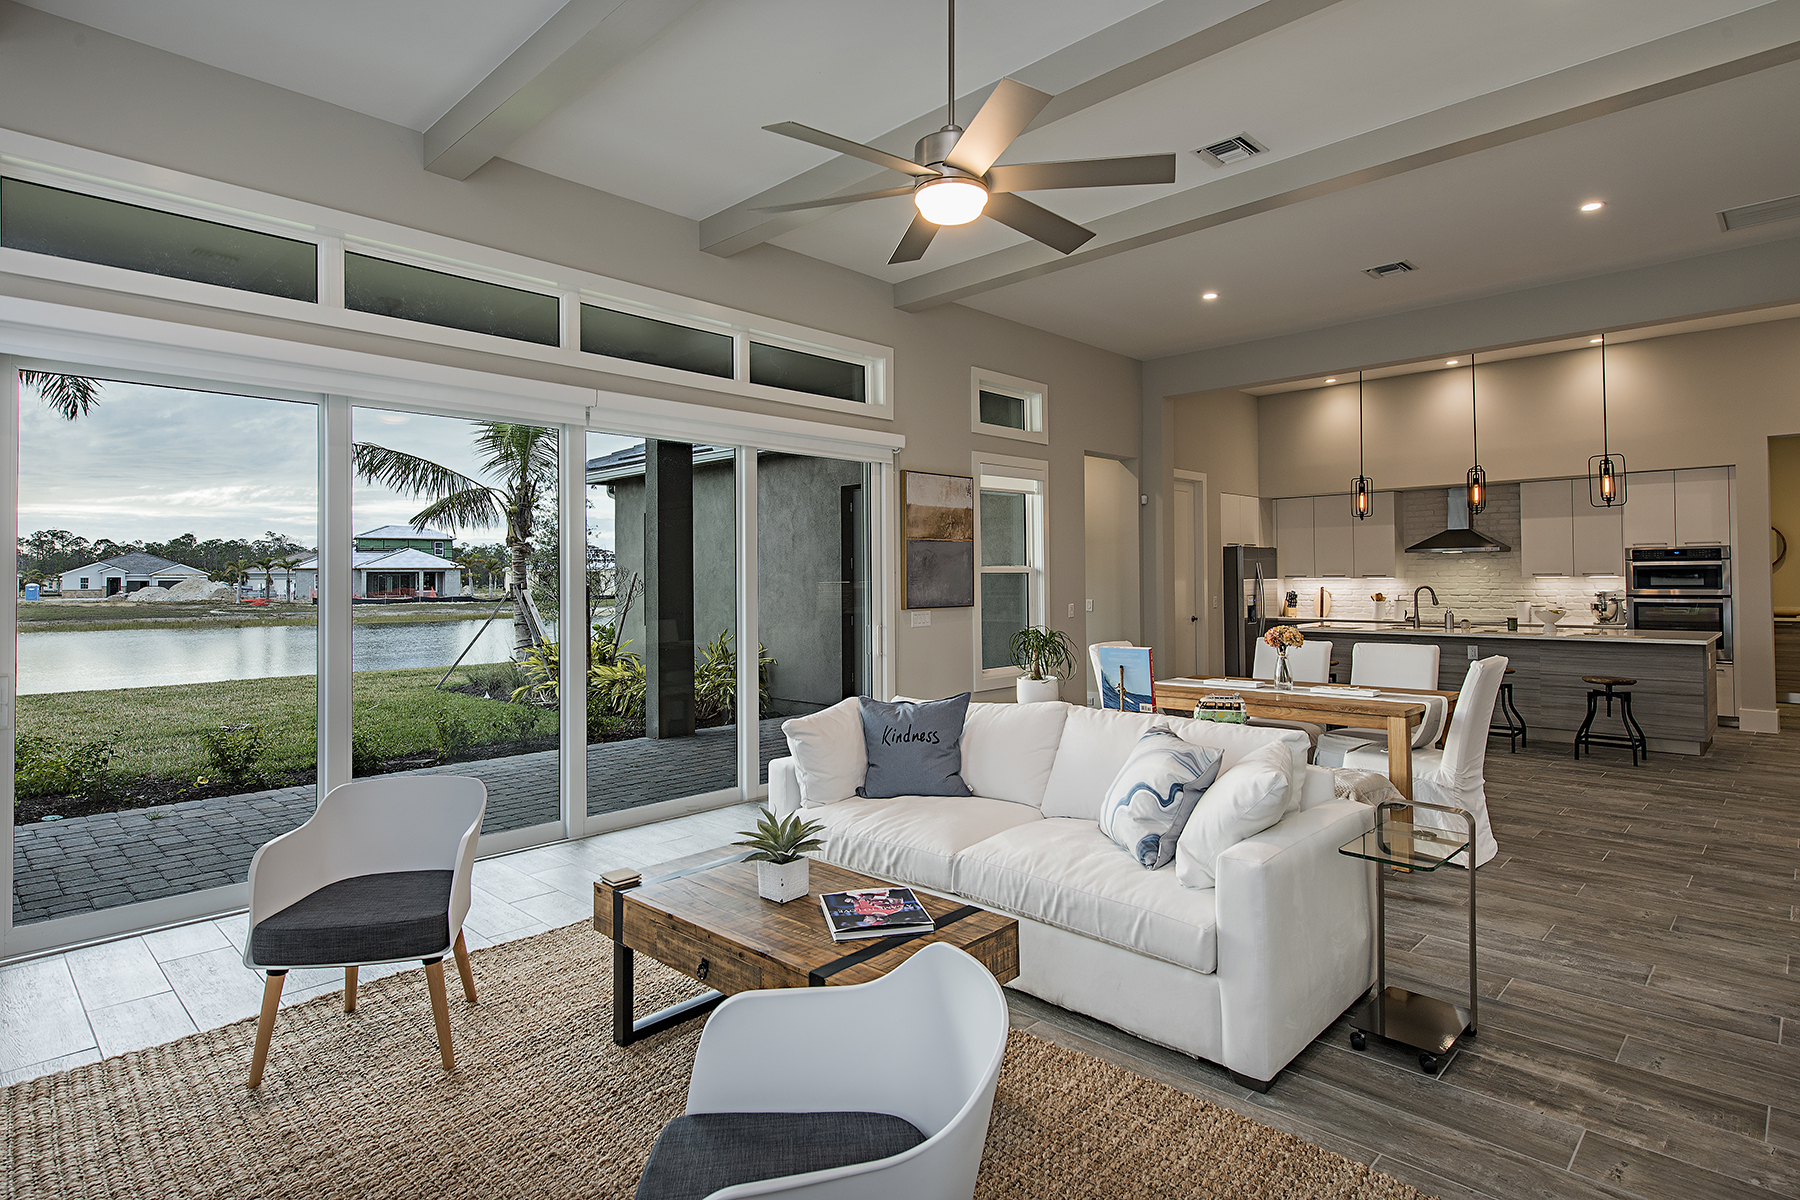 Single Family Home for Sale at NAPLES RESERVE 14729 Windward Ln, Naples, Florida, 34114 United States